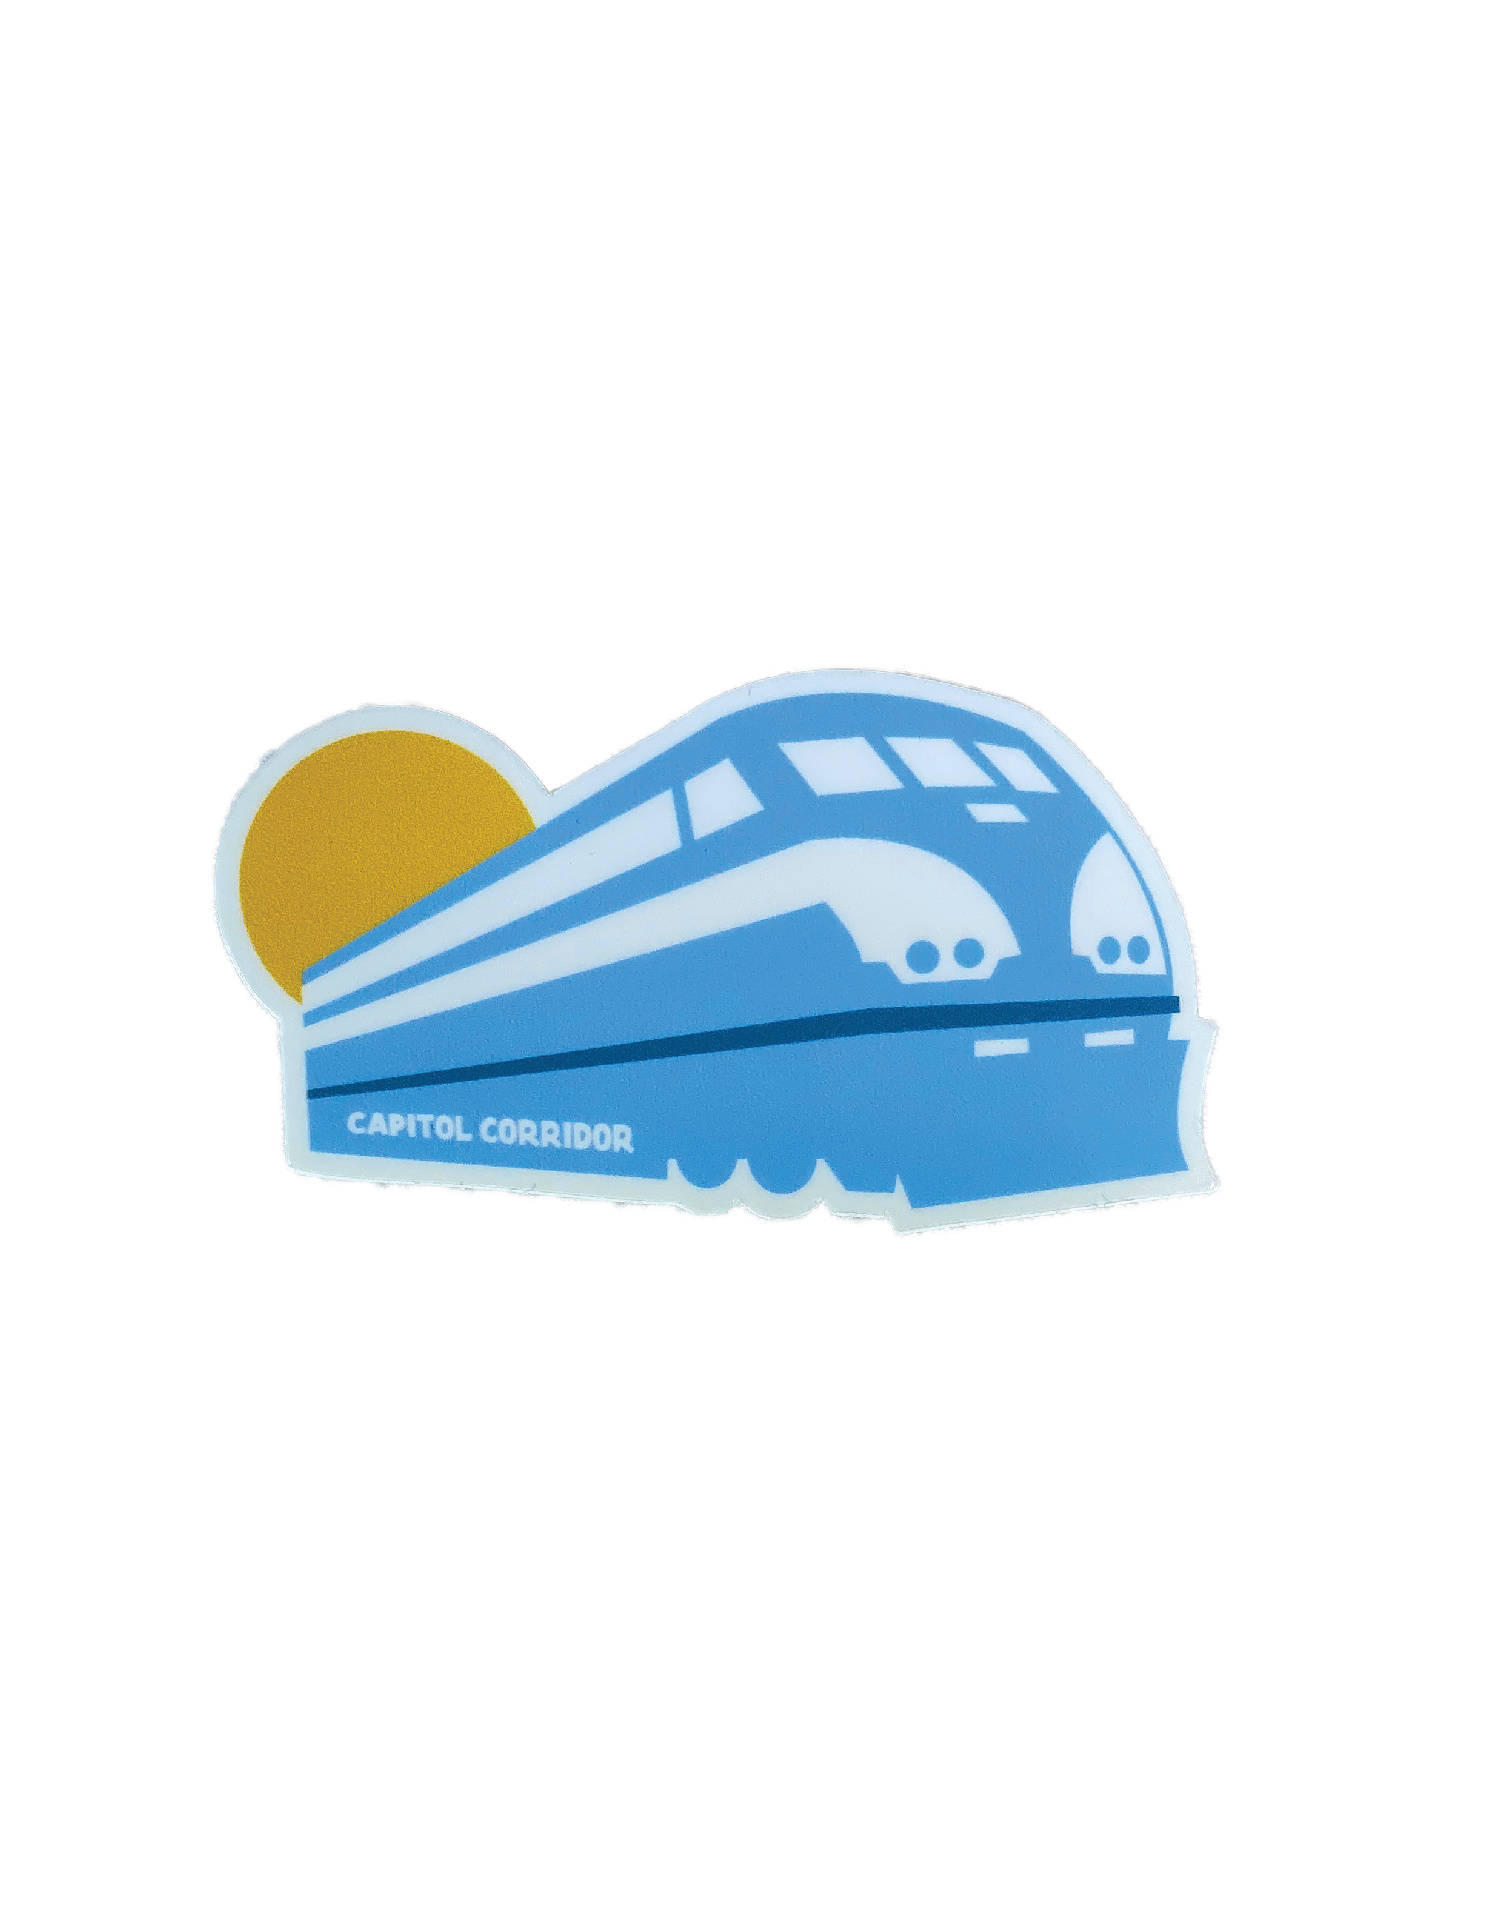 Capitol Corridor F-59 Locomotive Sticker